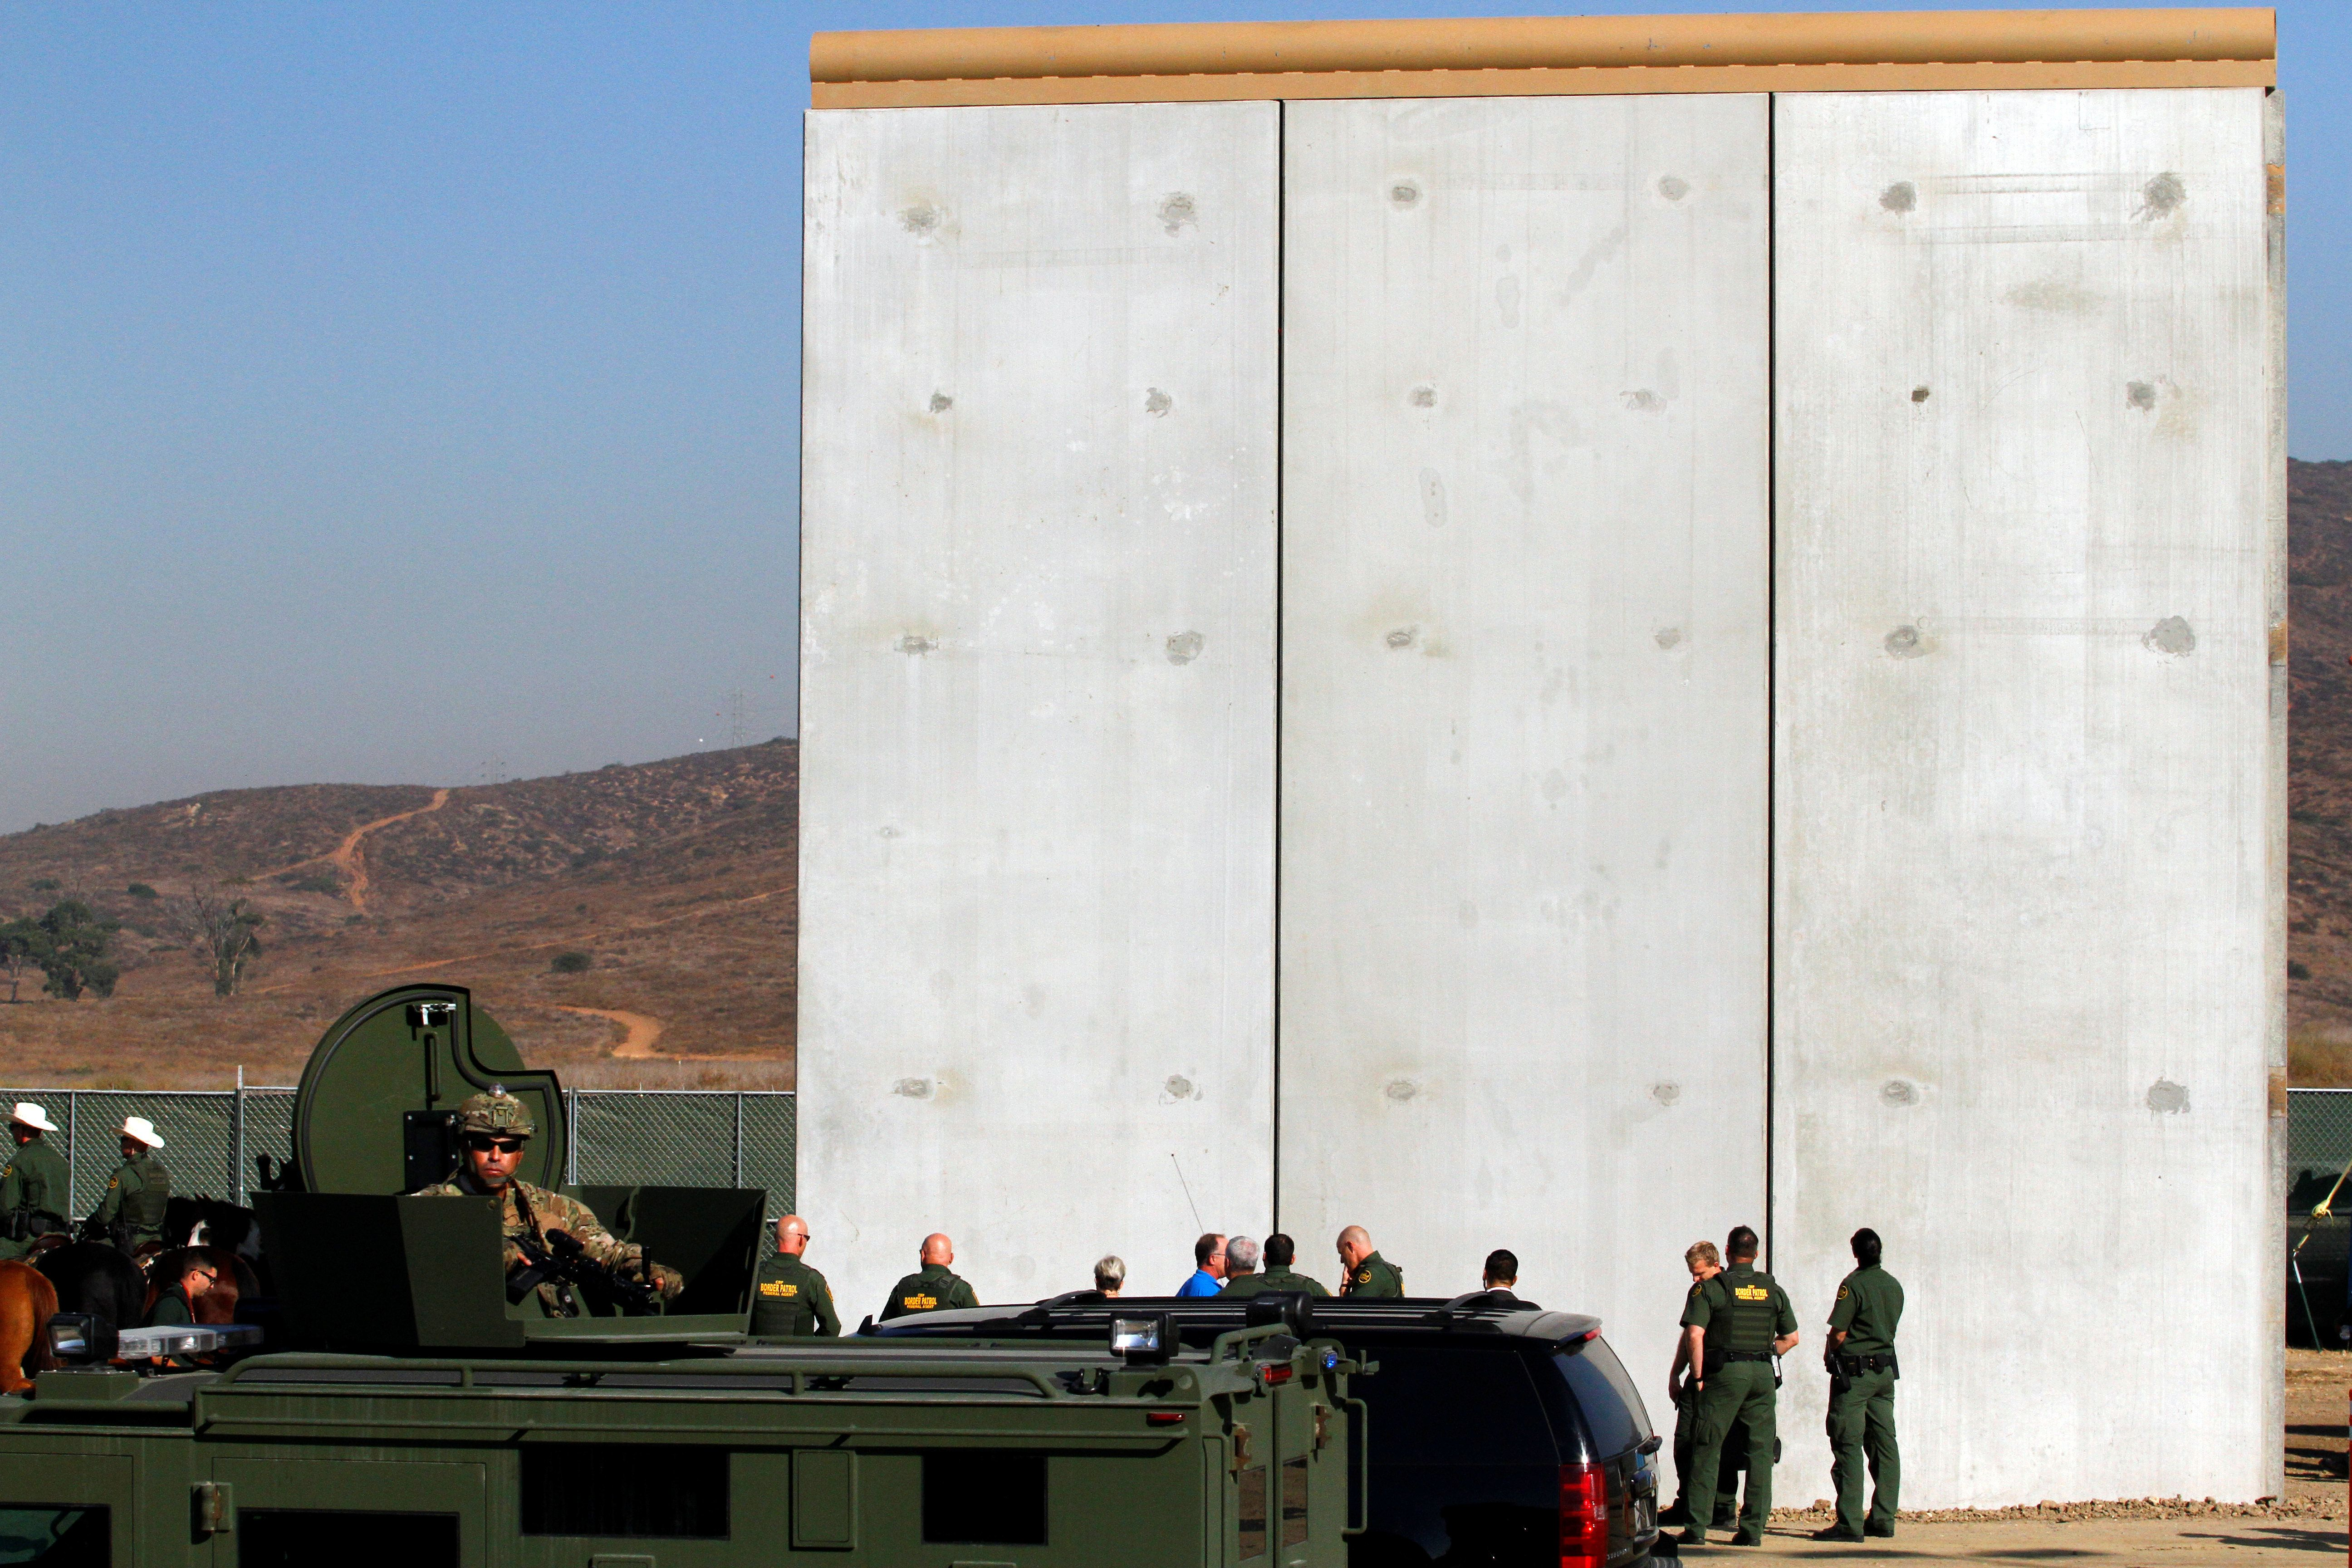 Border patrol authorities visit the site where several prototypes for U.S. President Donald Trump's border wall with Mexico have been built, in this picture taken from the Mexican side of the border, in Tijuana, Mexico, October 26, 2017. REUTERS/Jorge Duenes